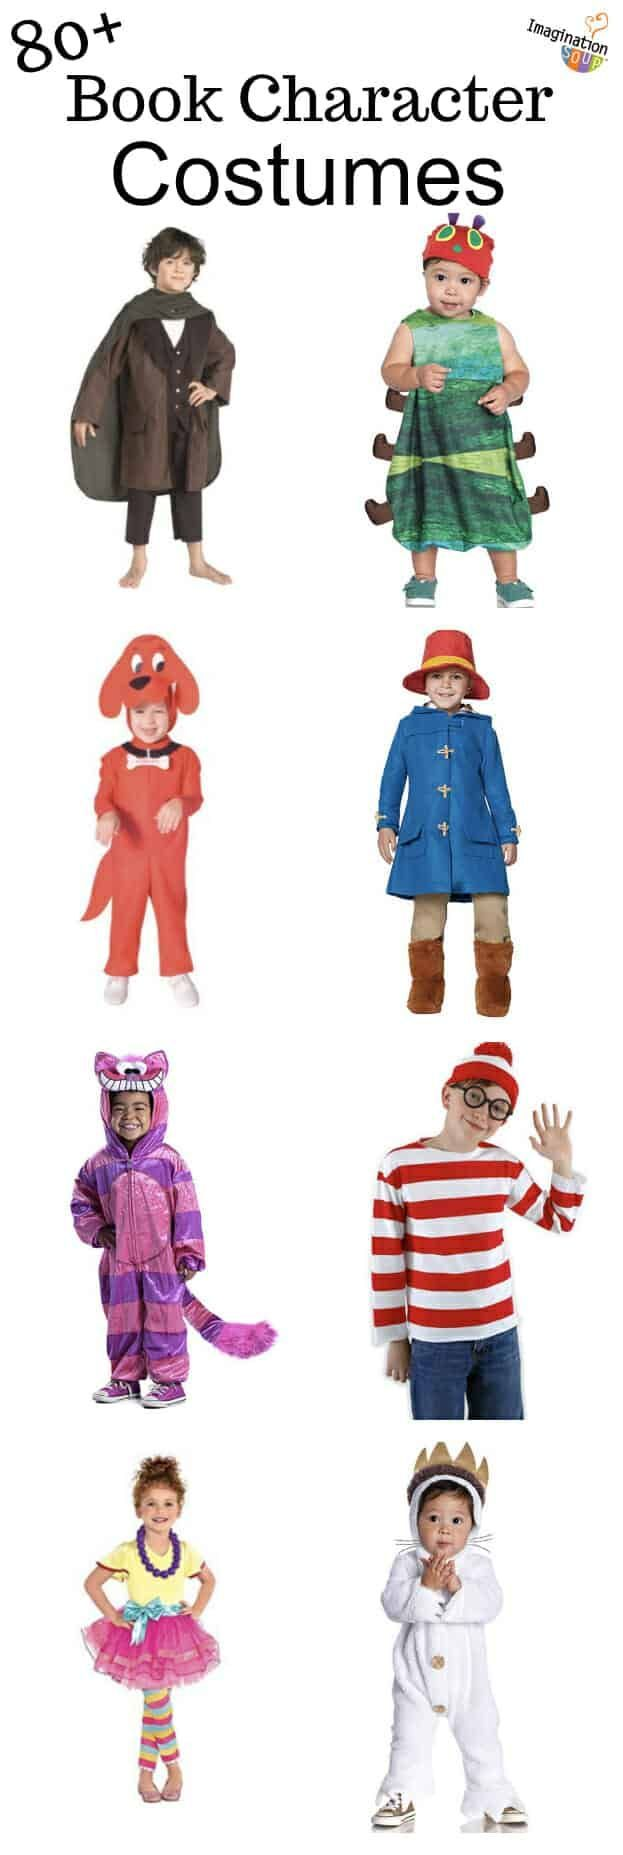 Favorite Book Character Costumes For Kids On Halloween Book Character Cost Book Character Costumes Children S Book Characters Kids Book Character Costumes